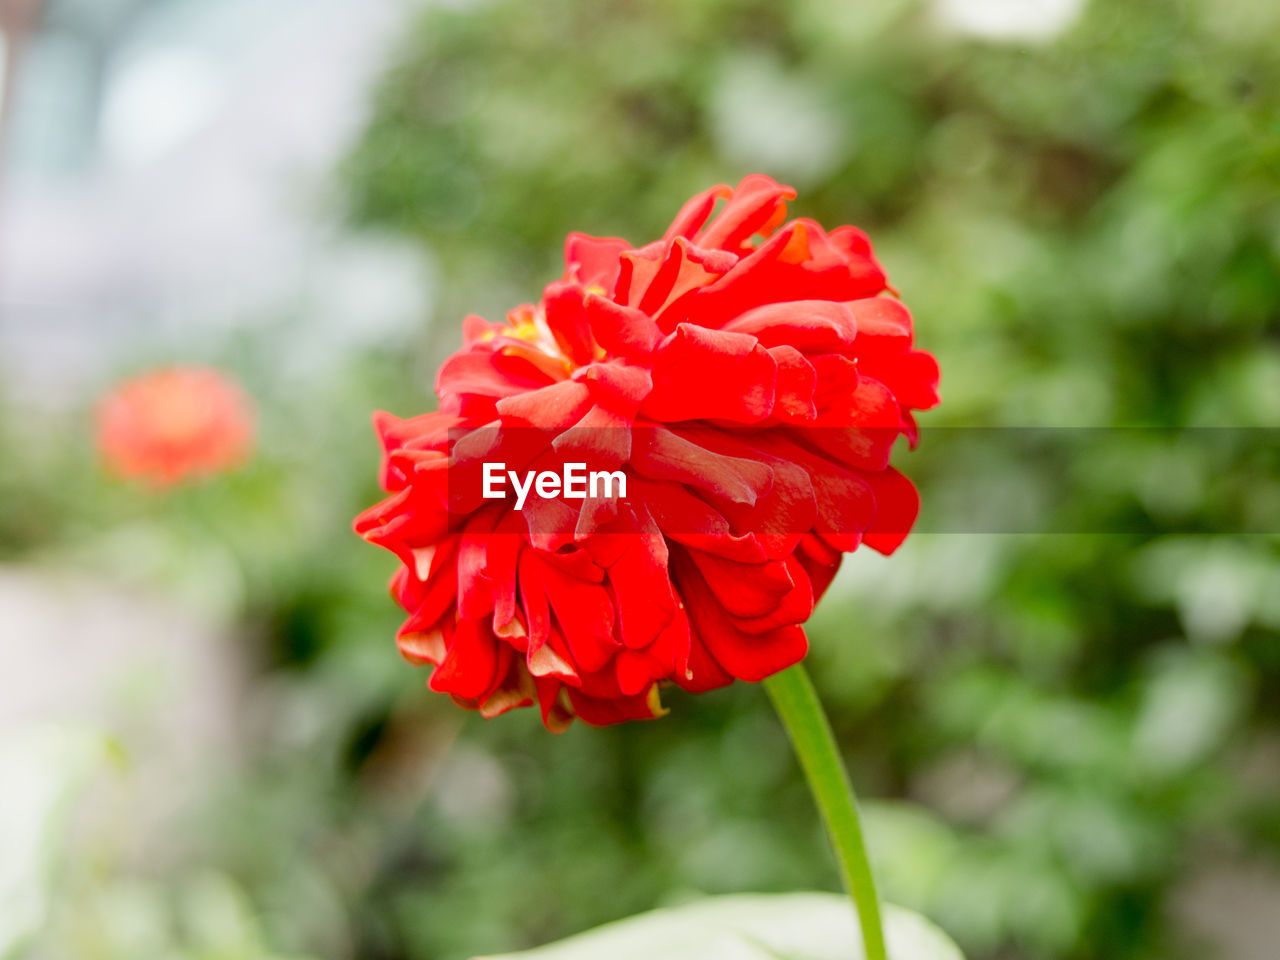 flower, petal, nature, beauty in nature, fragility, red, growth, freshness, flower head, blooming, focus on foreground, no people, day, outdoors, plant, close-up, zinnia